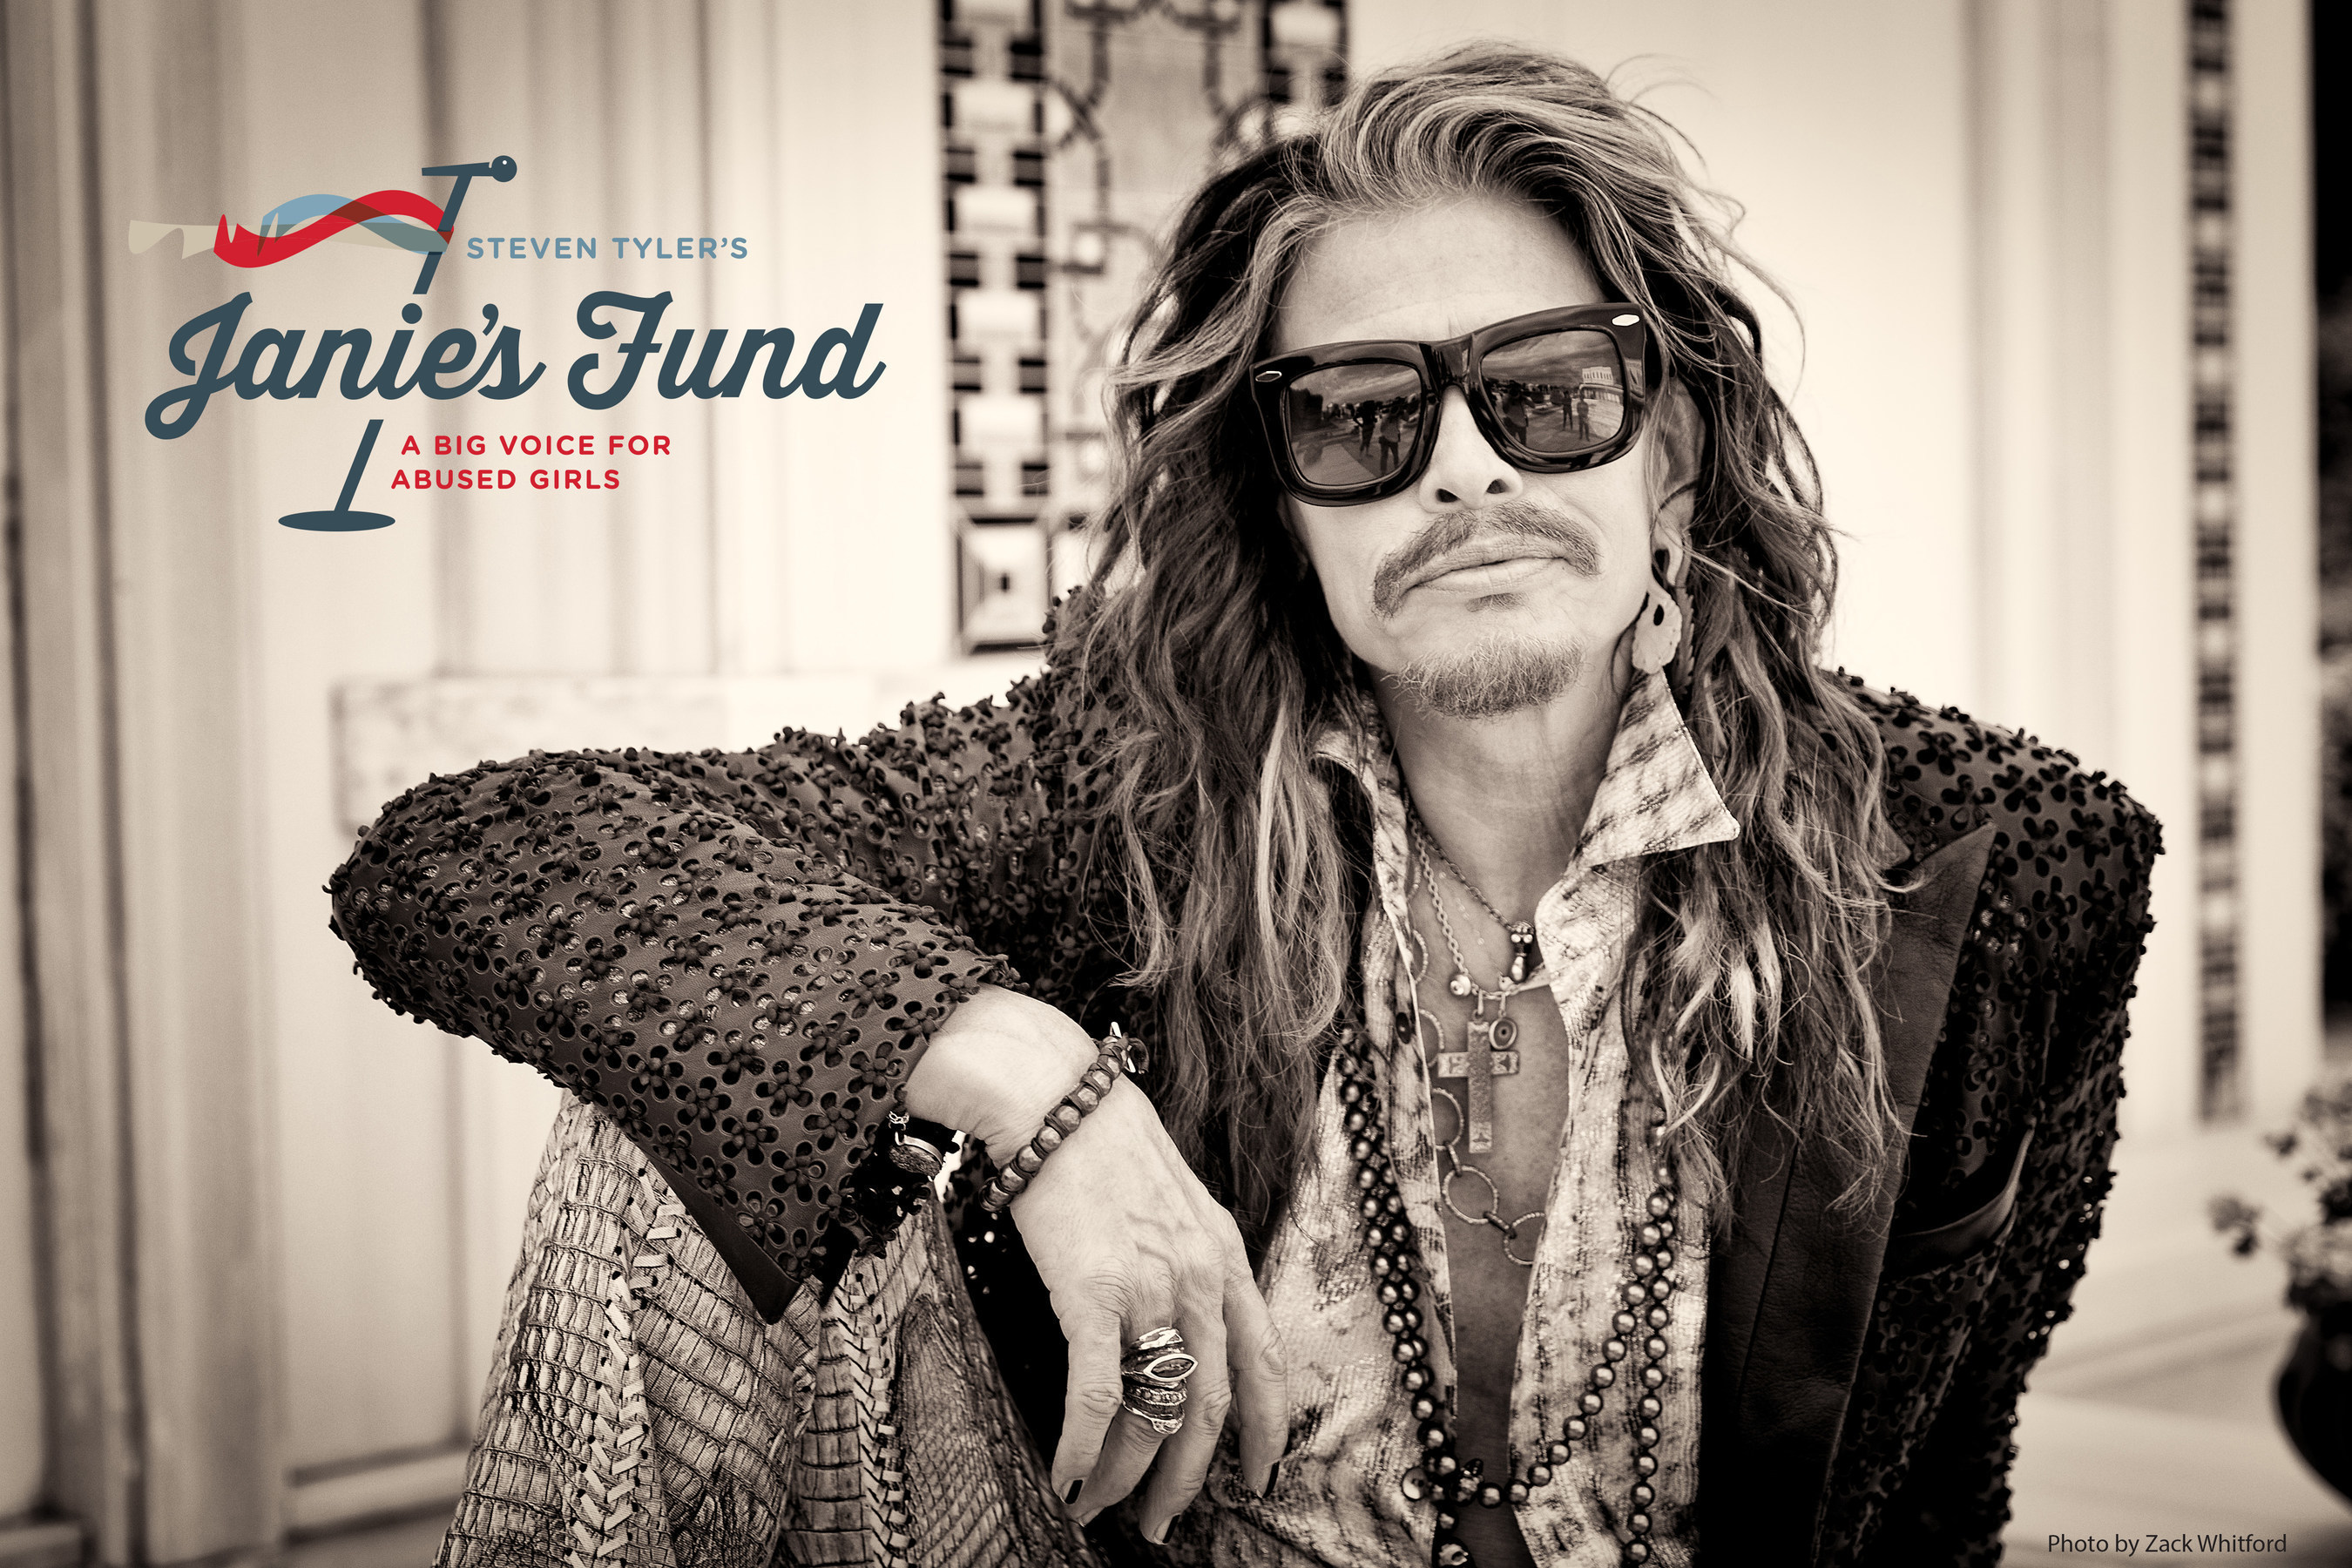 Musician Steven Tyler announced today the launch of his new signature philanthropic initiative to help girls ...